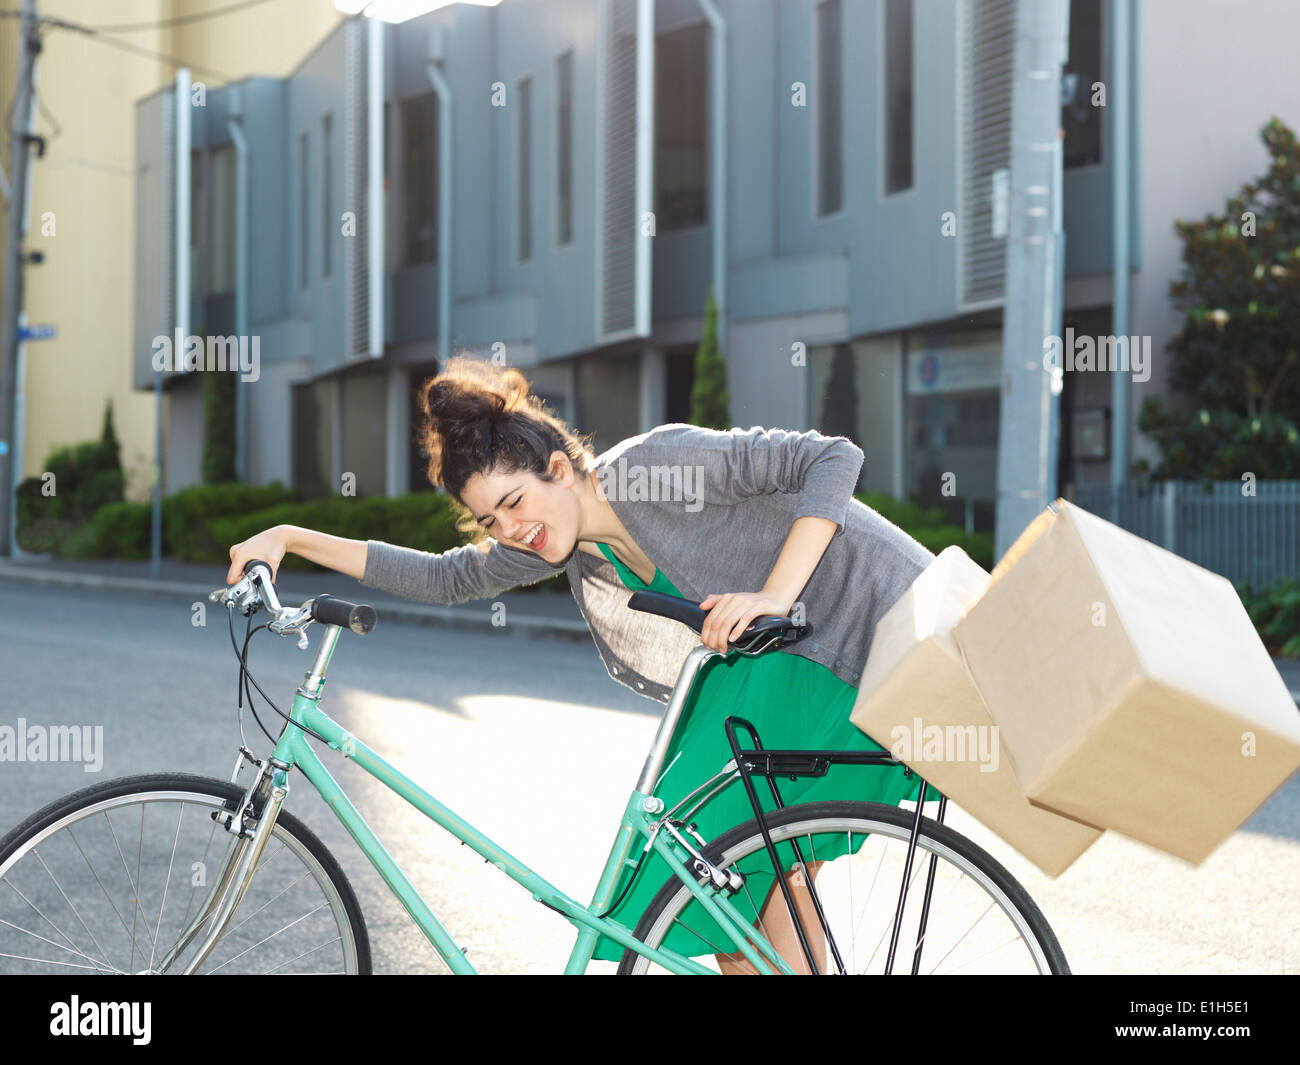 Young woman with bicycle and falling cardboard boxes - Stock Image